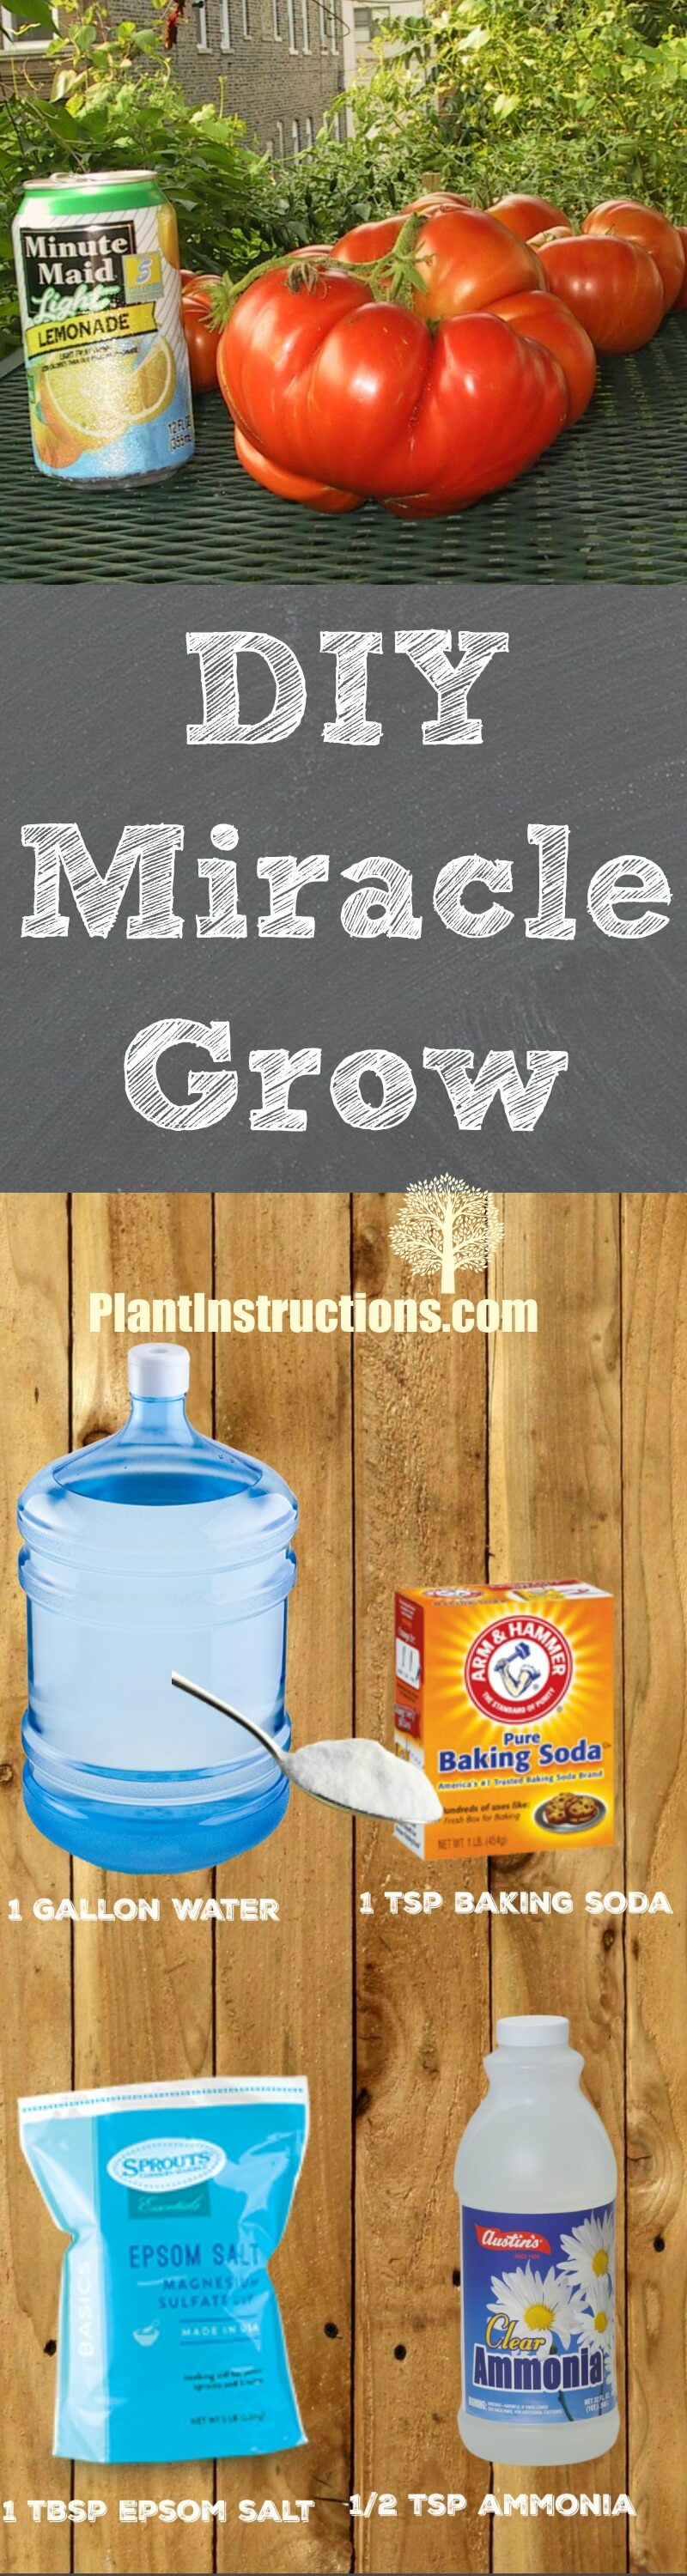 DIY Miracle Grow